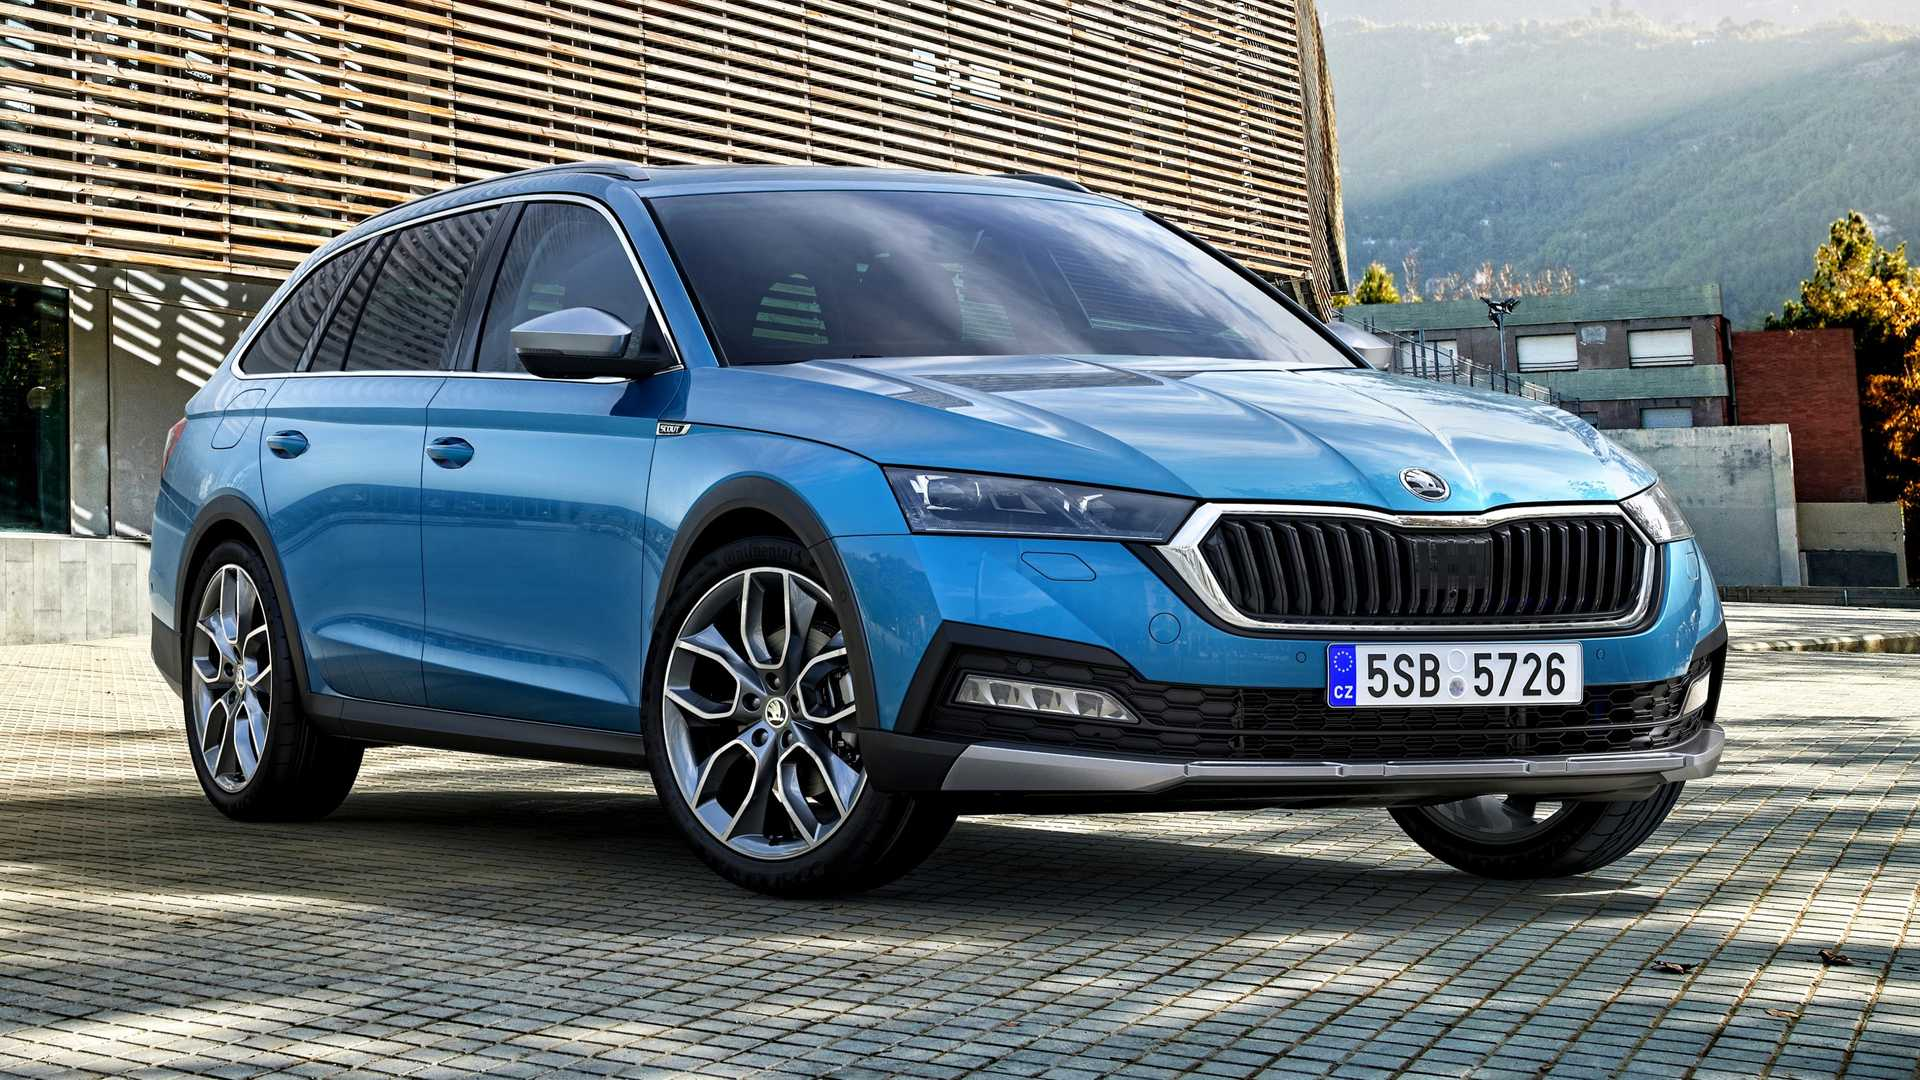 2021 Skoda Octavia Scout Lifted Wagon Debuts As The Suv Alternative